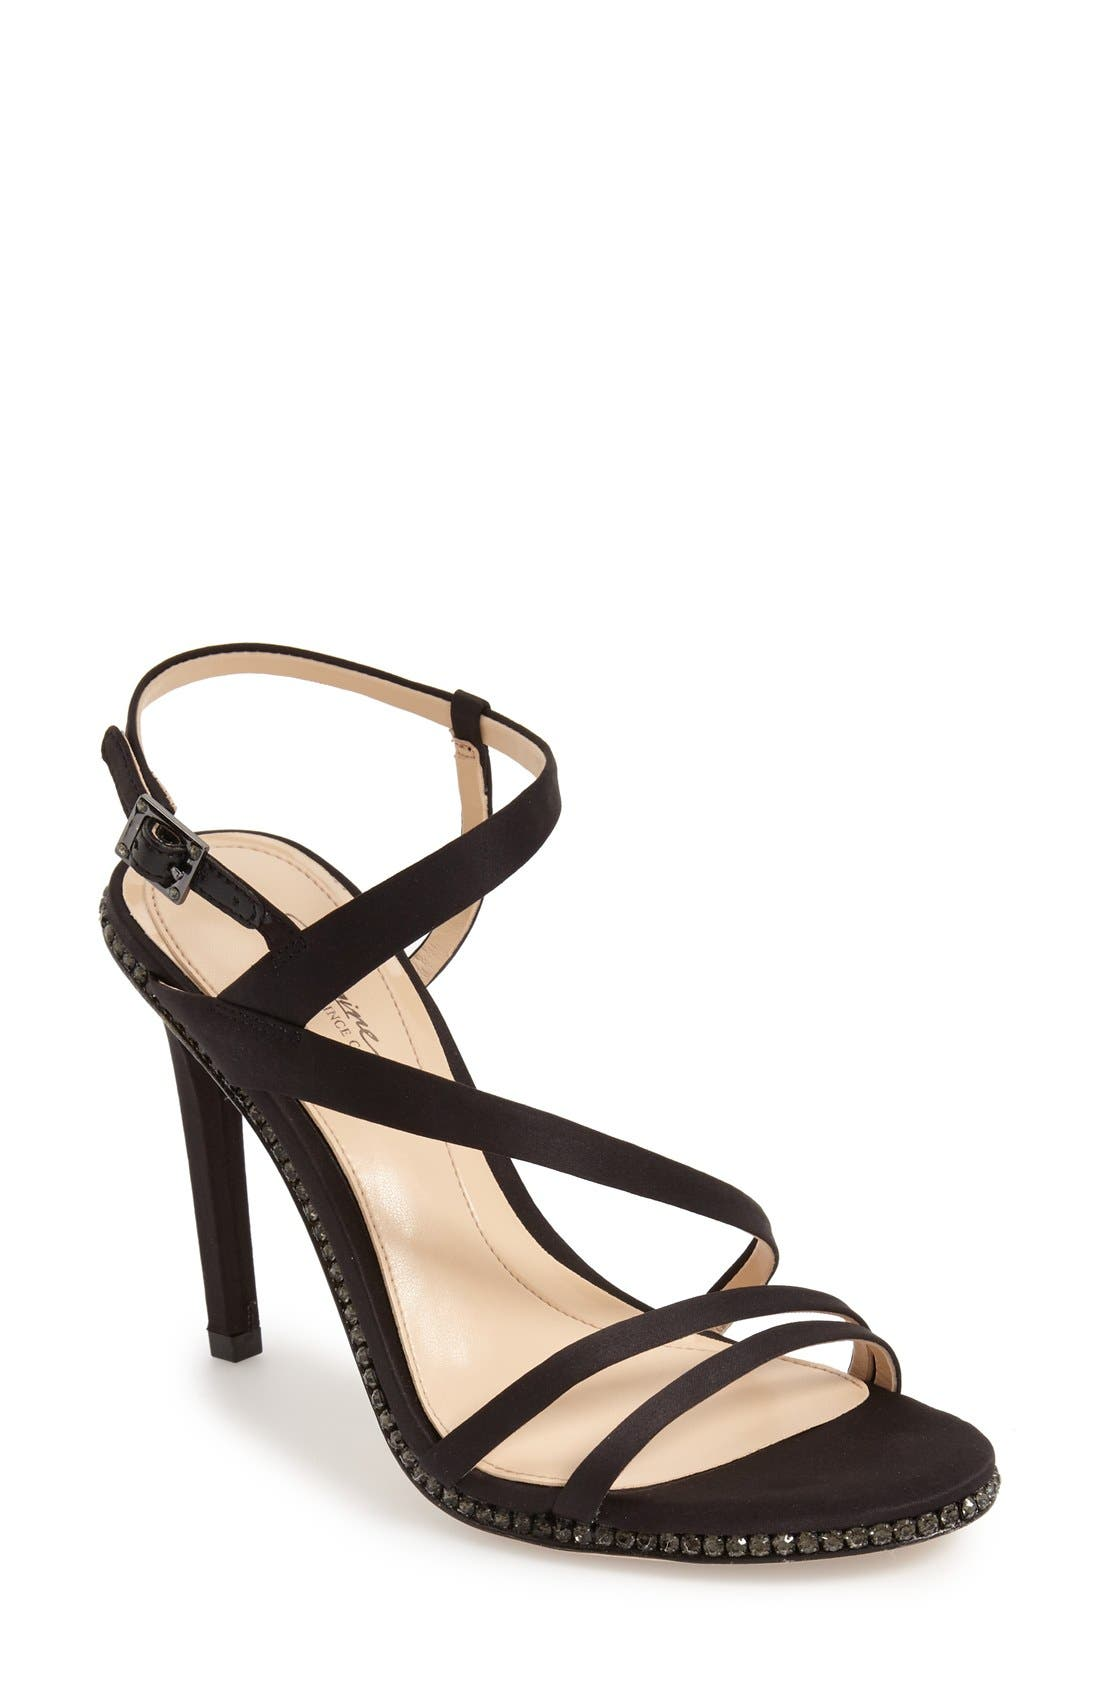 Imagine Vince Camuto 'Gian' Strappy Sandal,                             Main thumbnail 1, color,